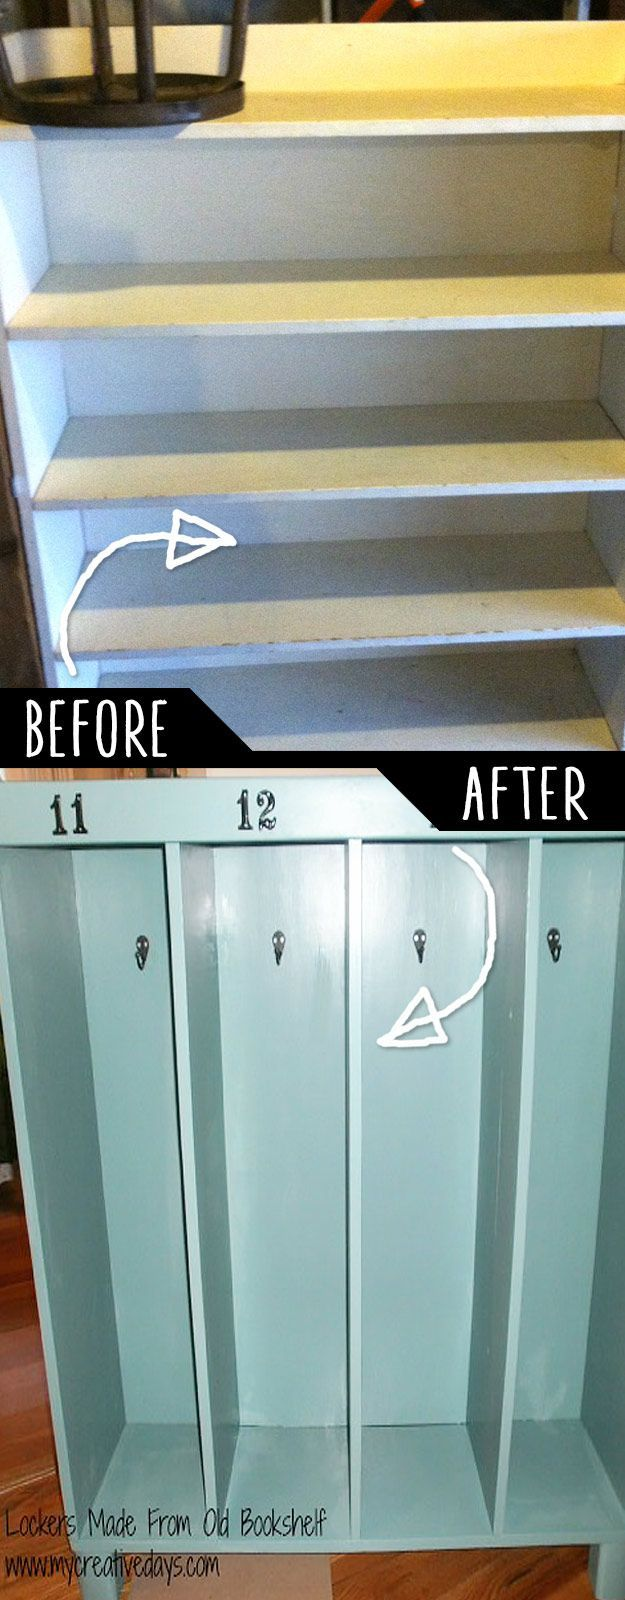 DIY Furniture Hacks | Lockers Made From Old Bookshelf | Cool Ideas for Creative Do It Yourself Furniture Made From Things You Might Not Expect - http://diyjoy.com/diy-furniture-hacks